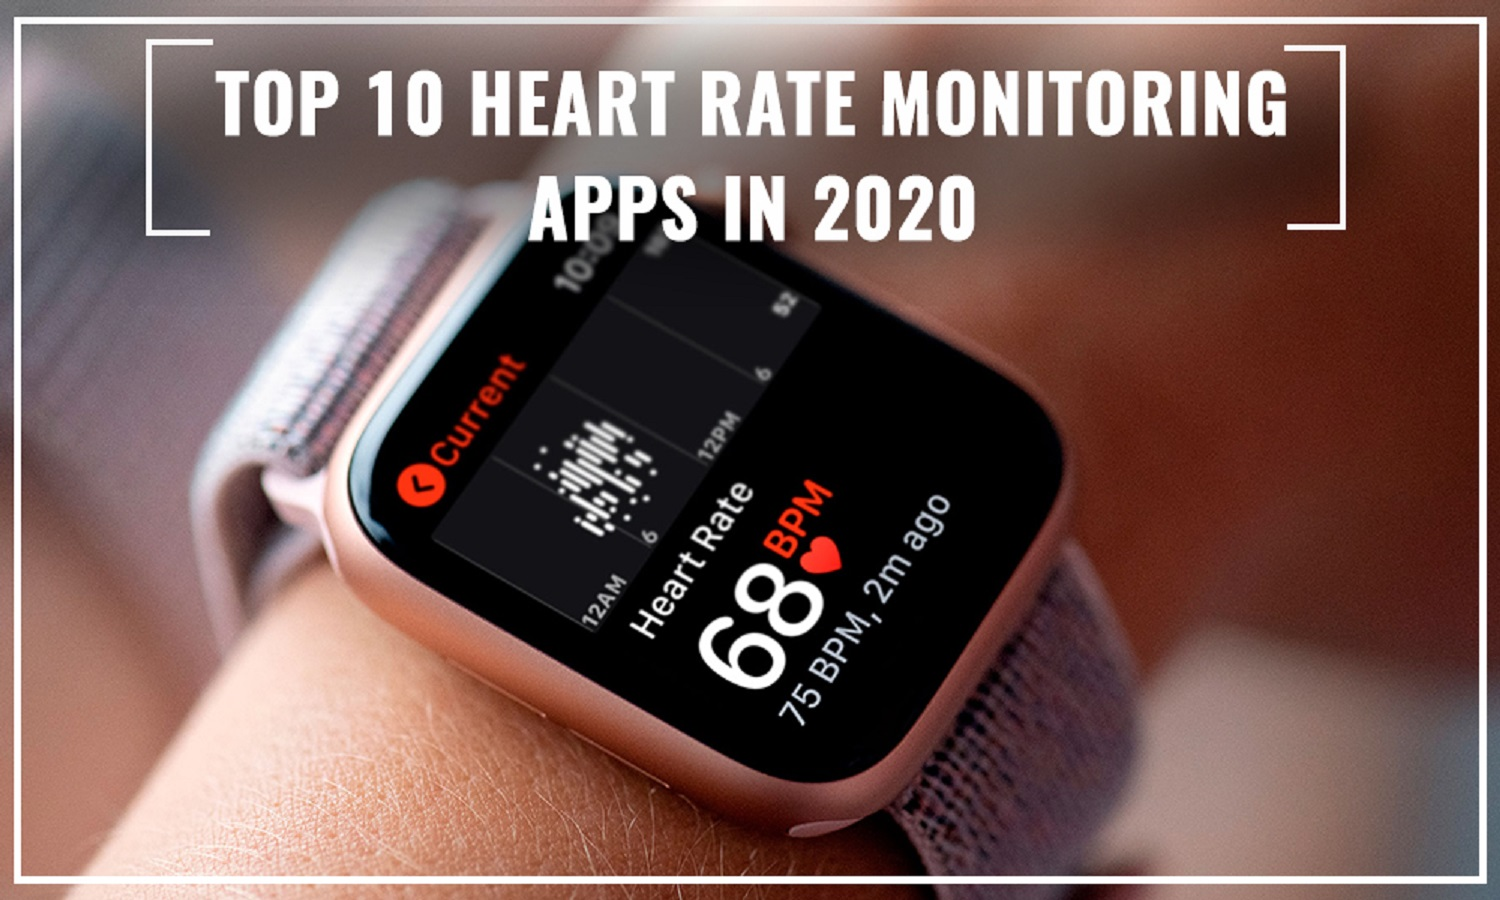 List of Top 10 Heart Rate Monitoring Apps In 2020